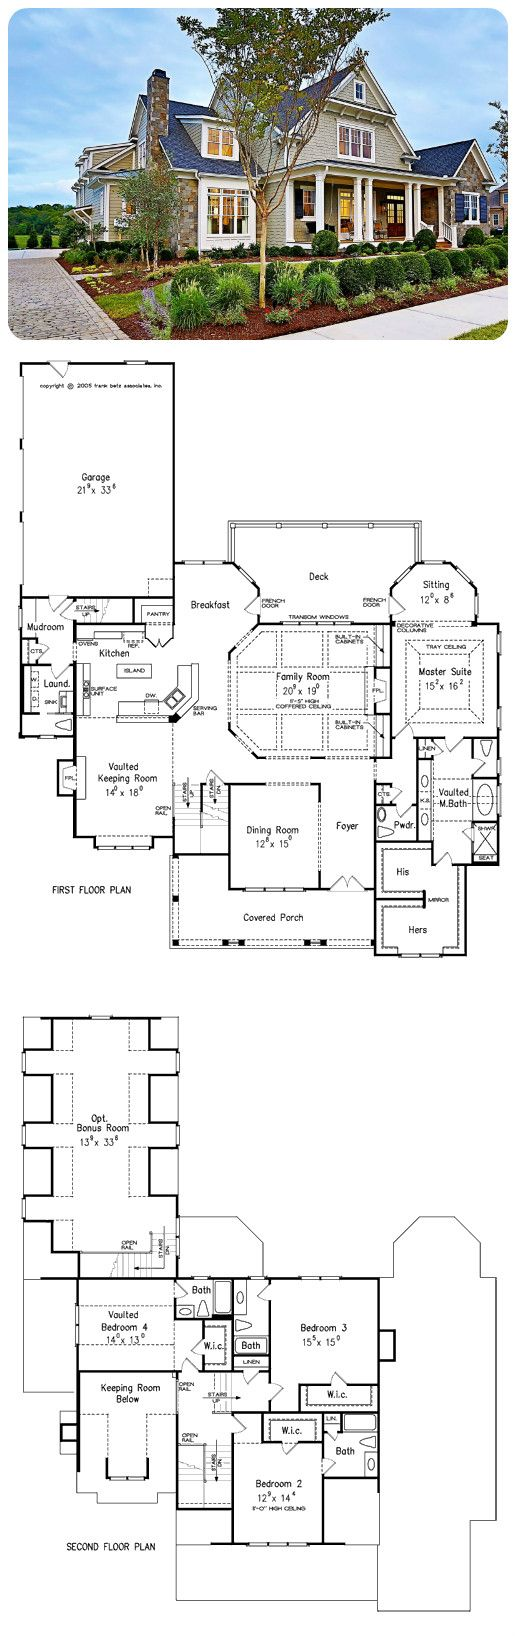 Uncategorized Floor Plan Ideas best 25 floor plans ideas on pinterest house northfield manor a frankbetz plan spacious luxury living is the hallmark